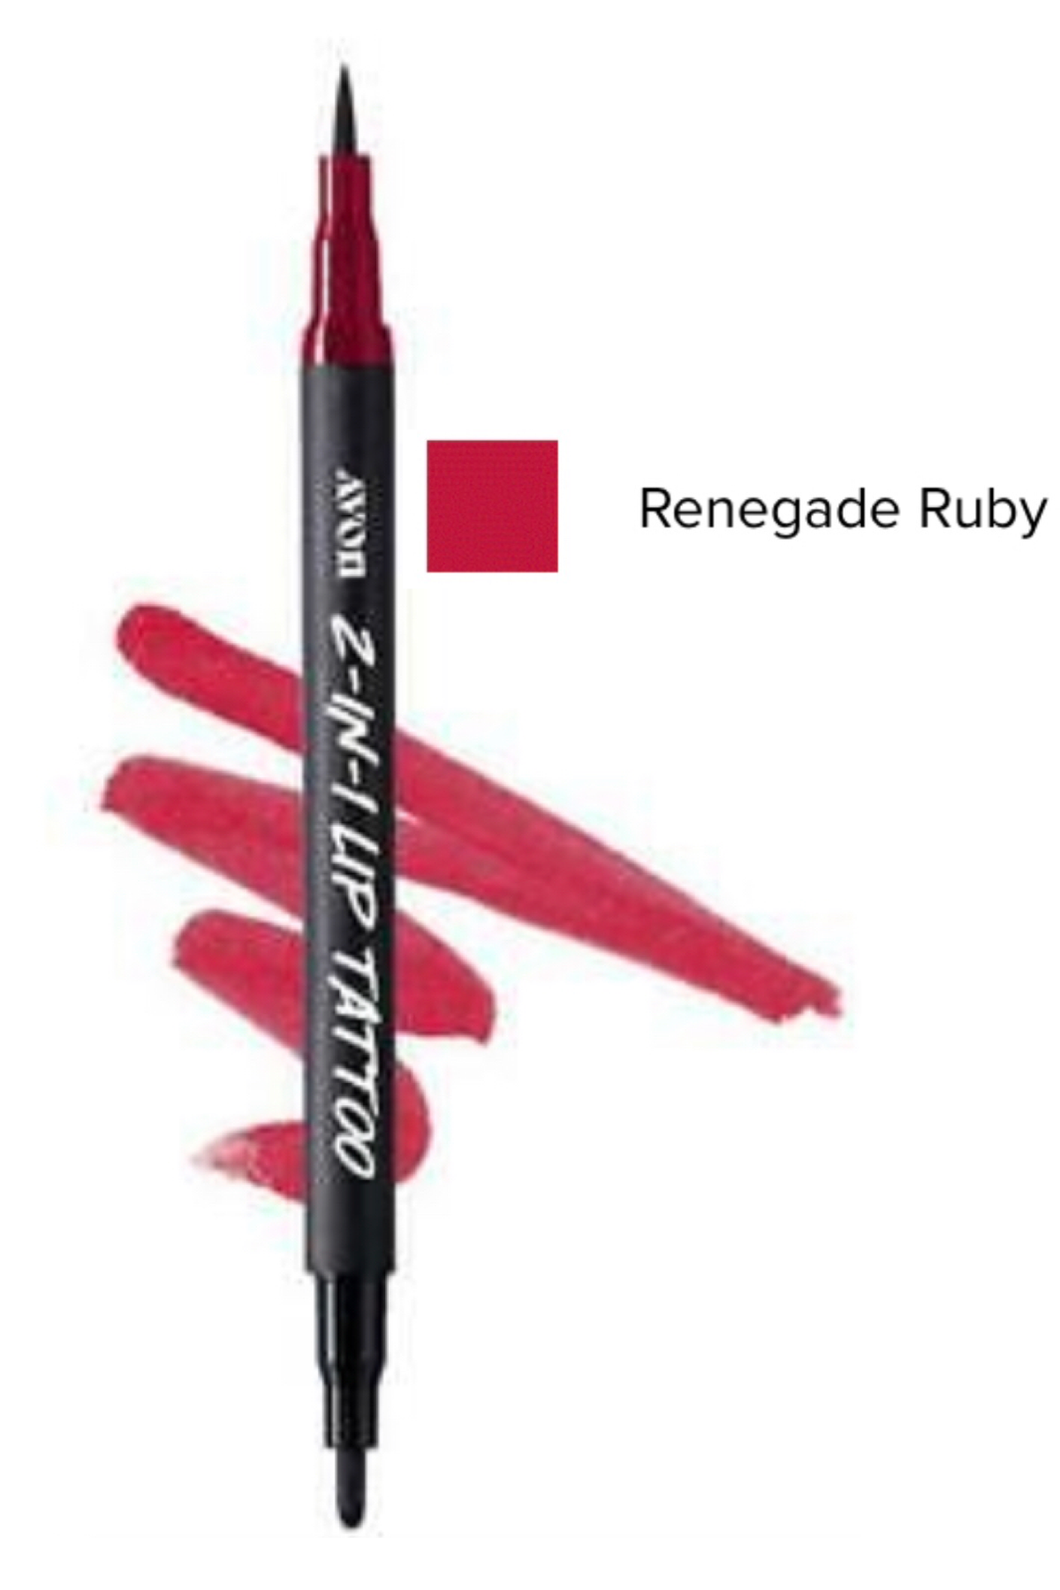 Renegade Ruby 2-in-1 Lip Tattoo Lip Line & Fill Duo